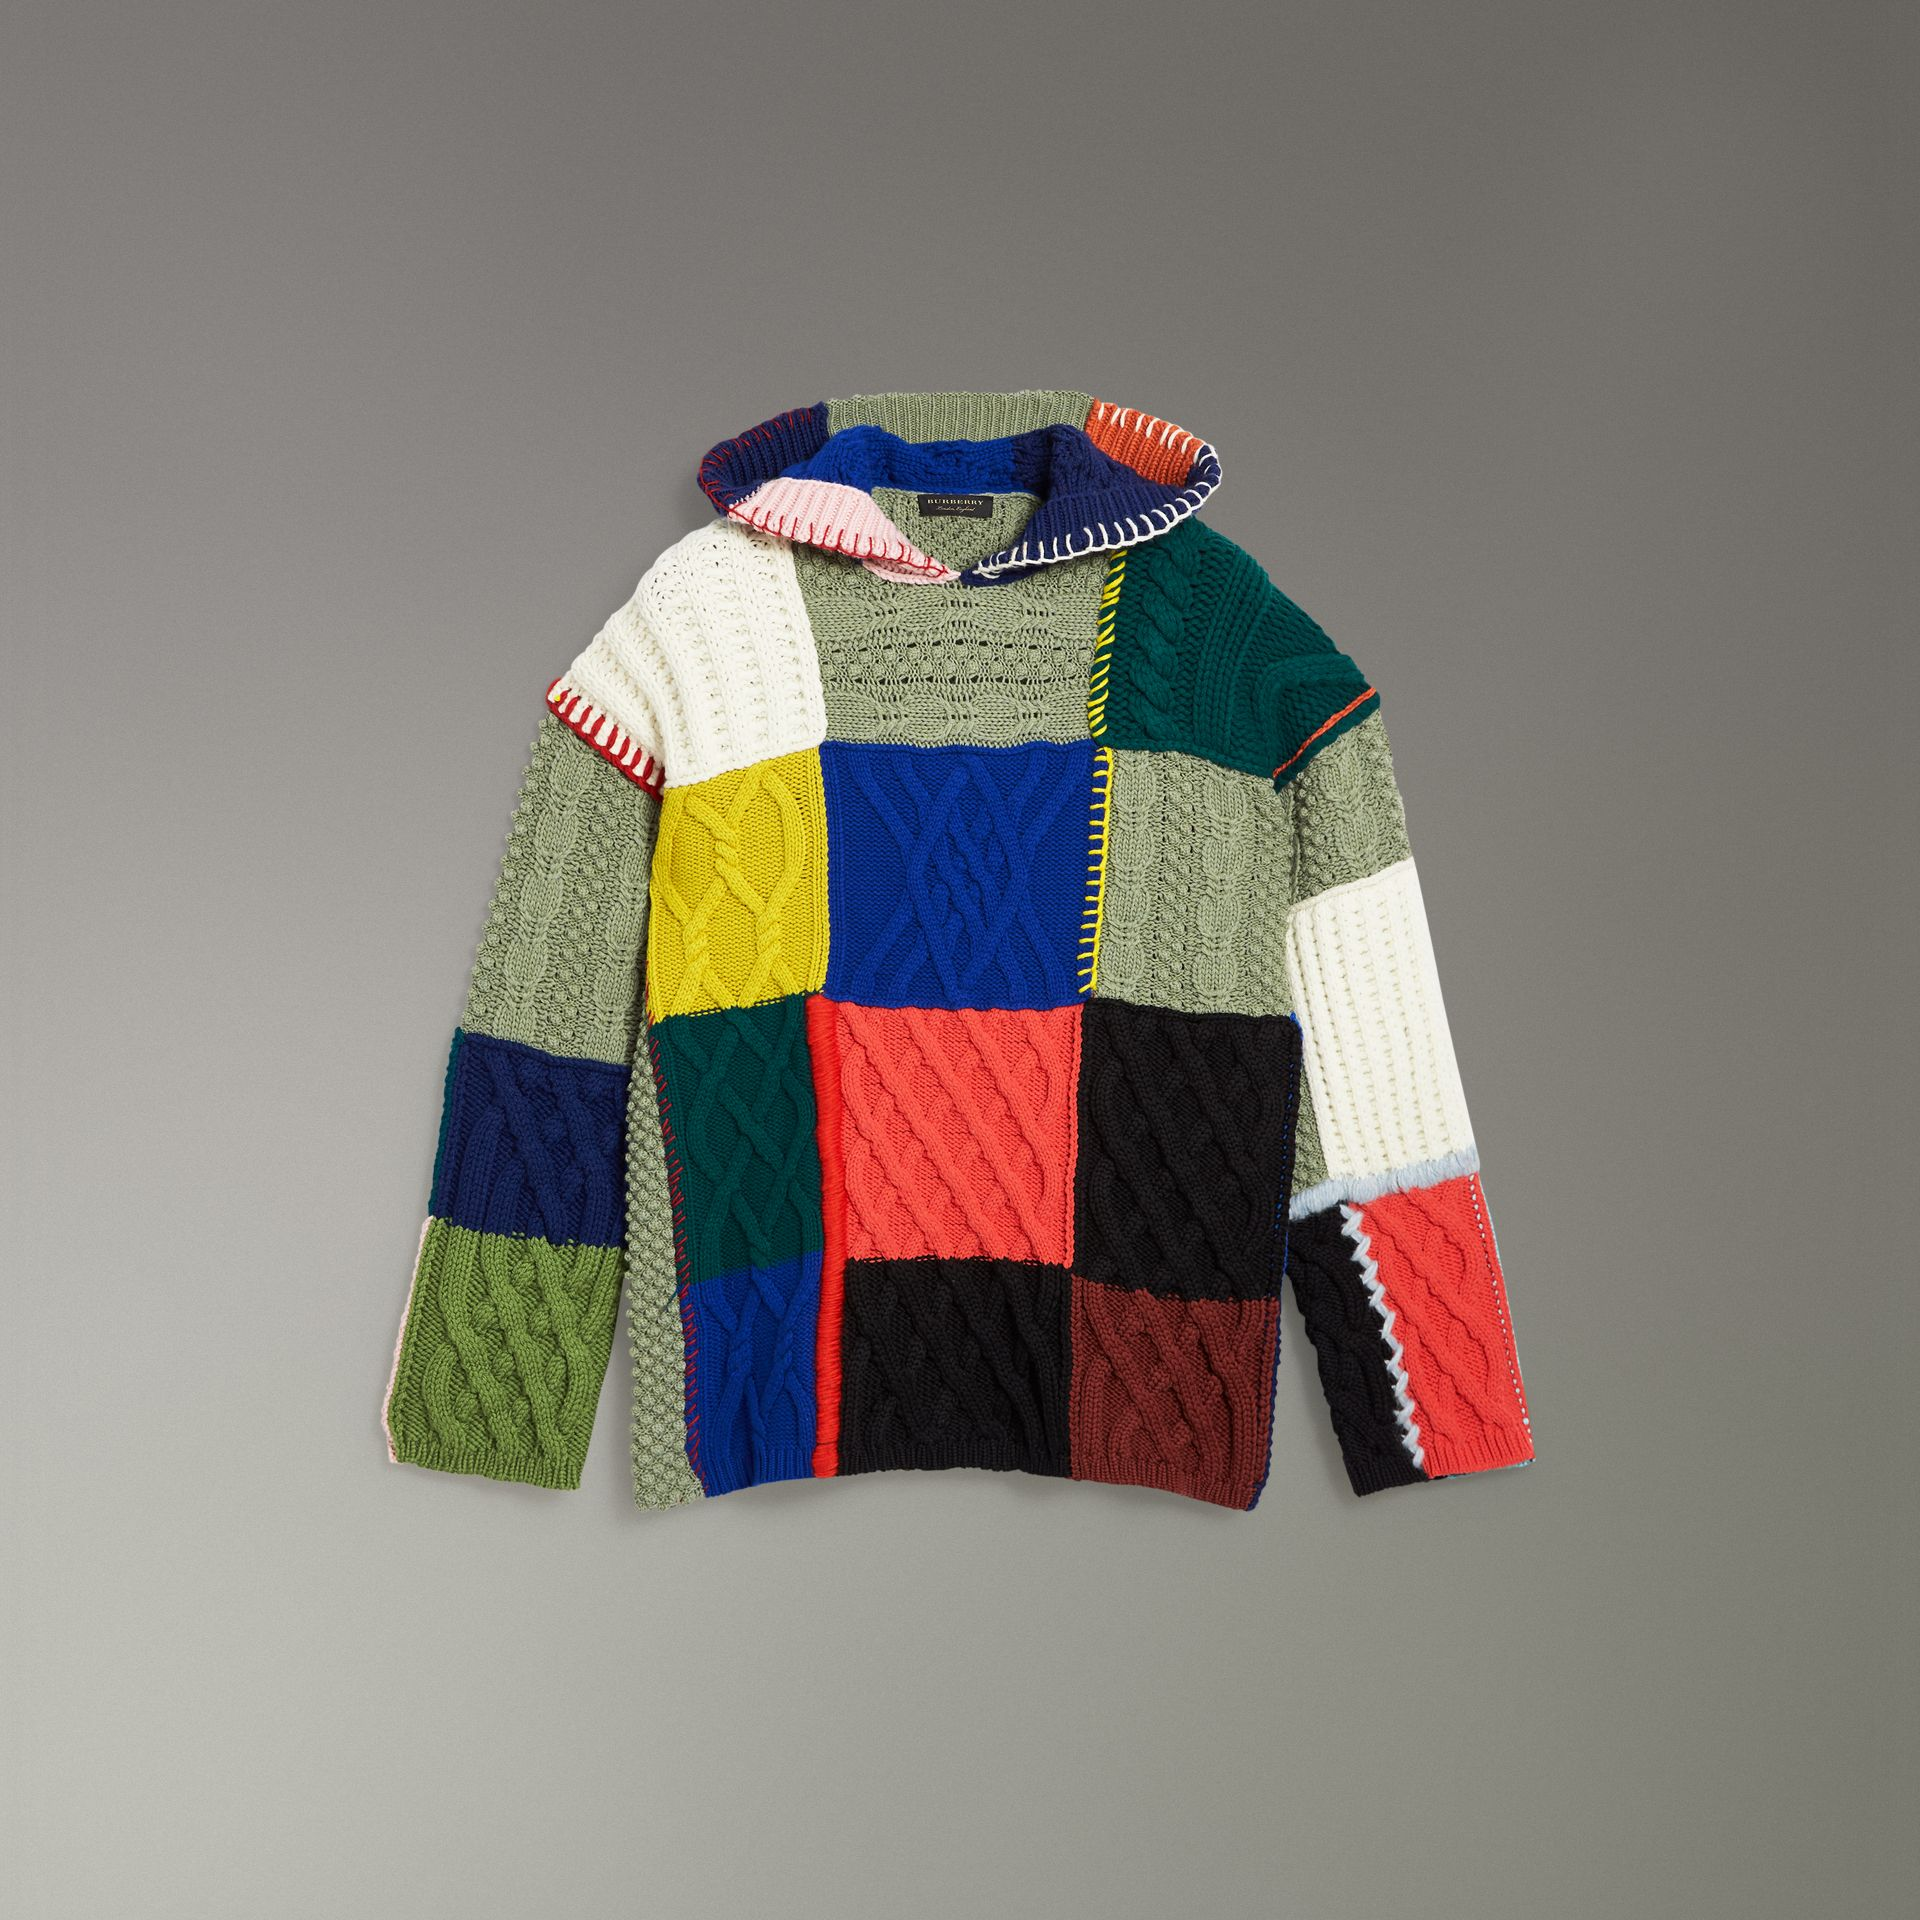 Patchwork Wool Cotton Blend Hoodie in Multicolour - Women | Burberry United States - gallery image 3